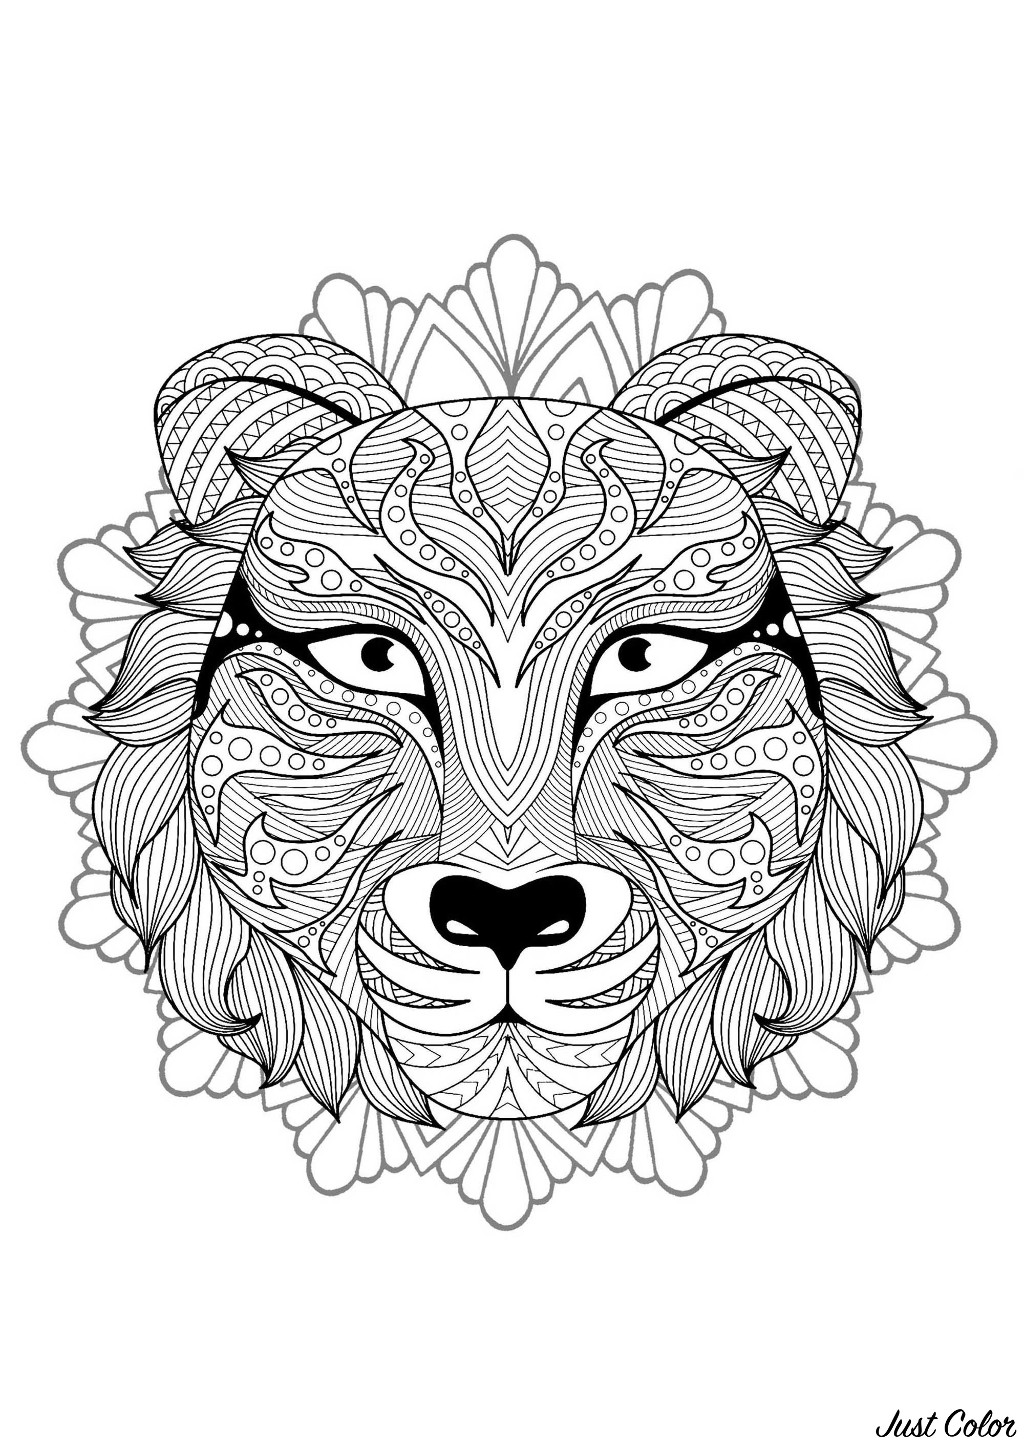 Tiger head in a difficult Mandala. Prepare your pencils and pens to color this incredible Mandala coloring page with little details. It can sometimes be even more relaxing when coloring and passively listening to music : don't hesitate to do it !